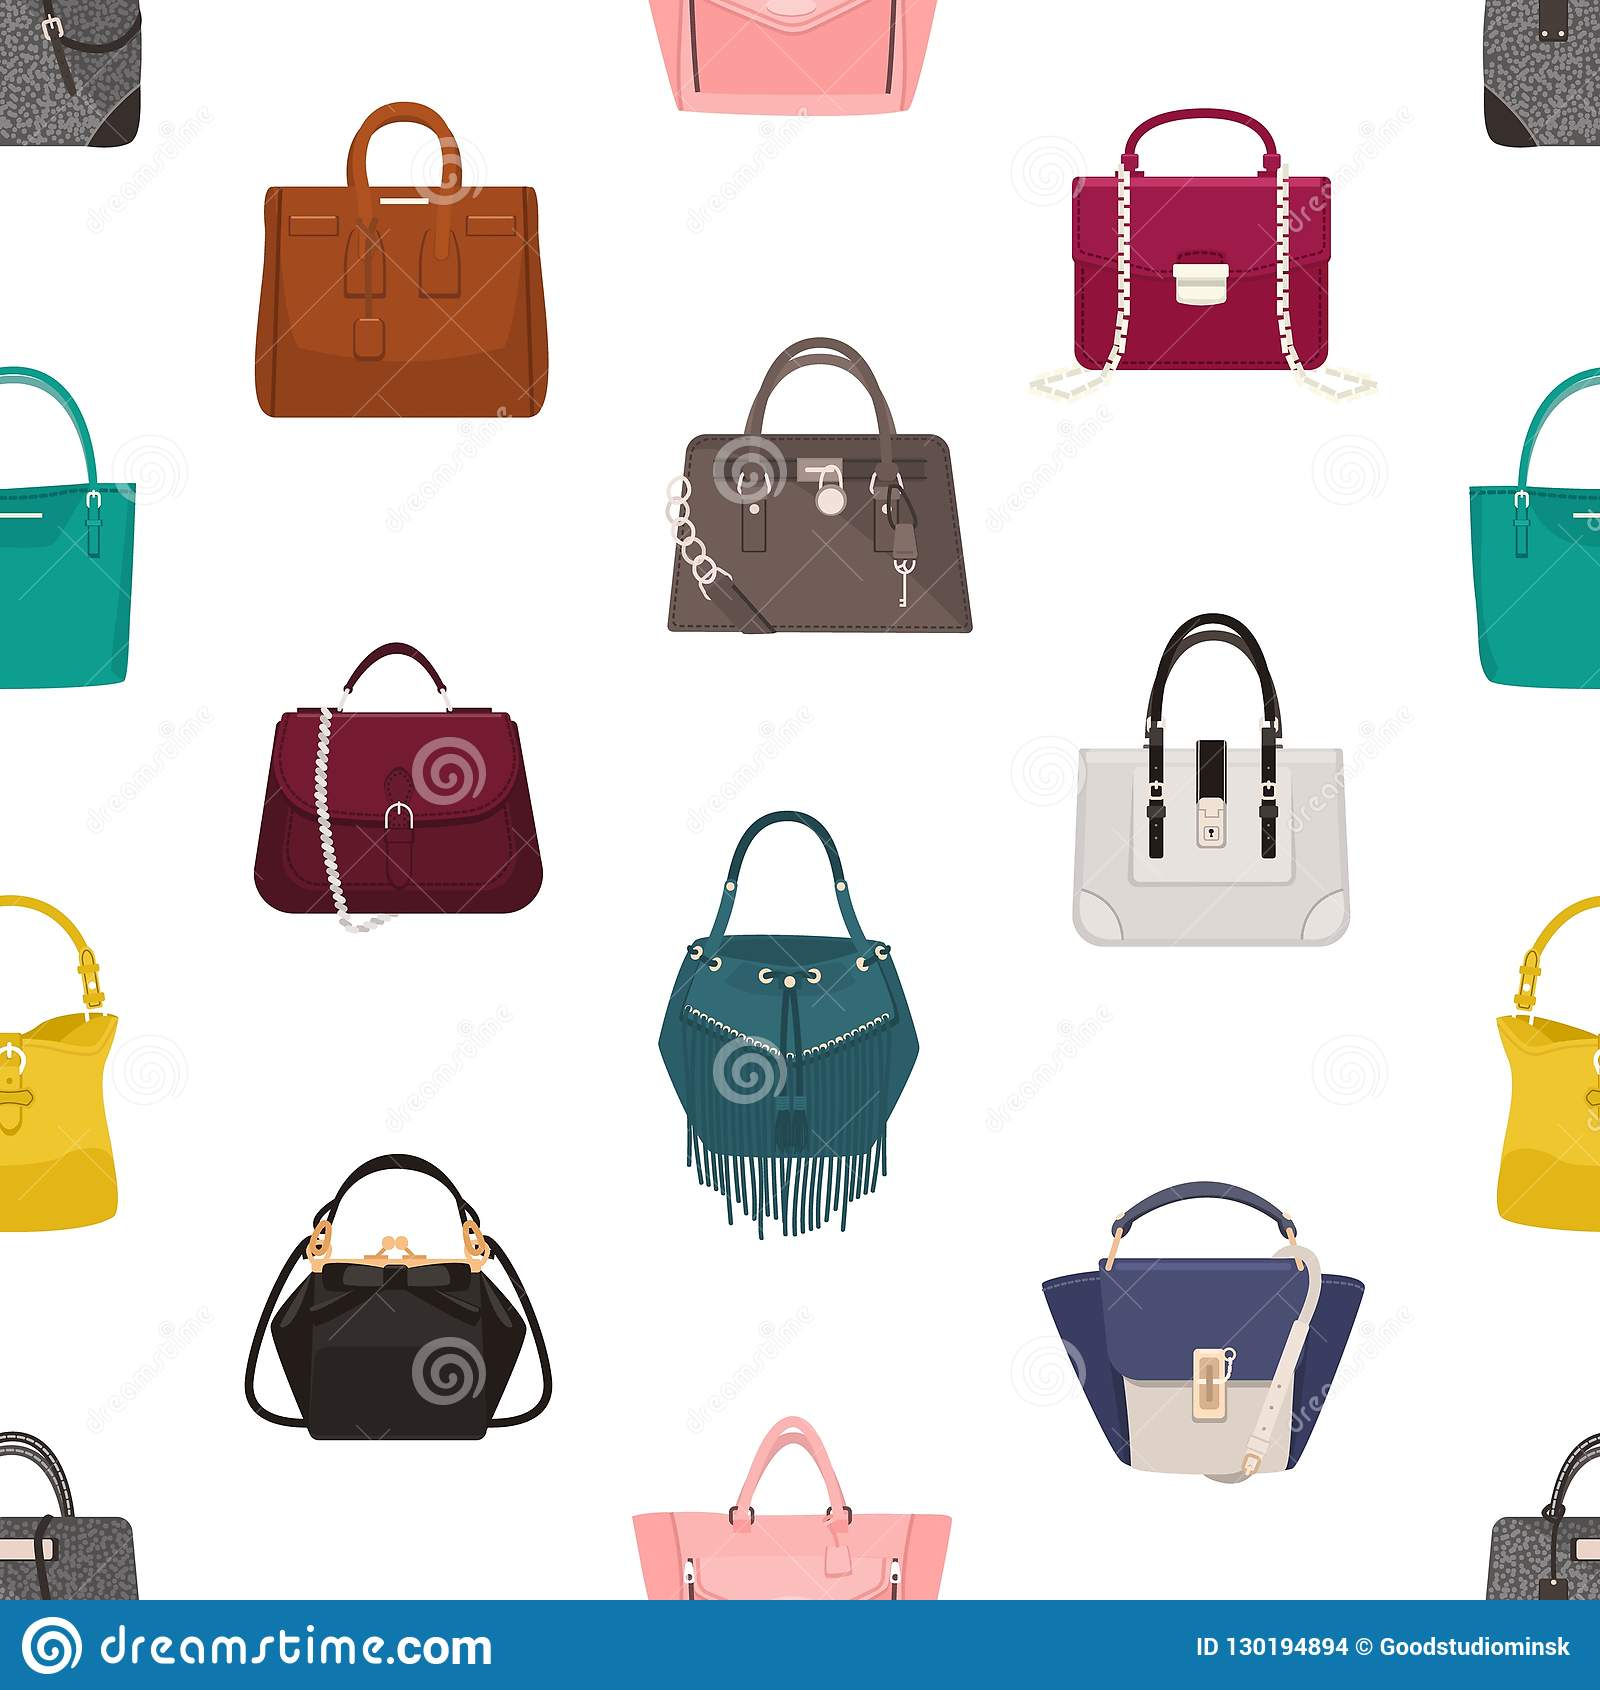 22be46be77 Trendy seamless pattern with stylish women`s bags or handbags of different  models on white background. Backdrop with fashionable leather accessories.  Vector ...